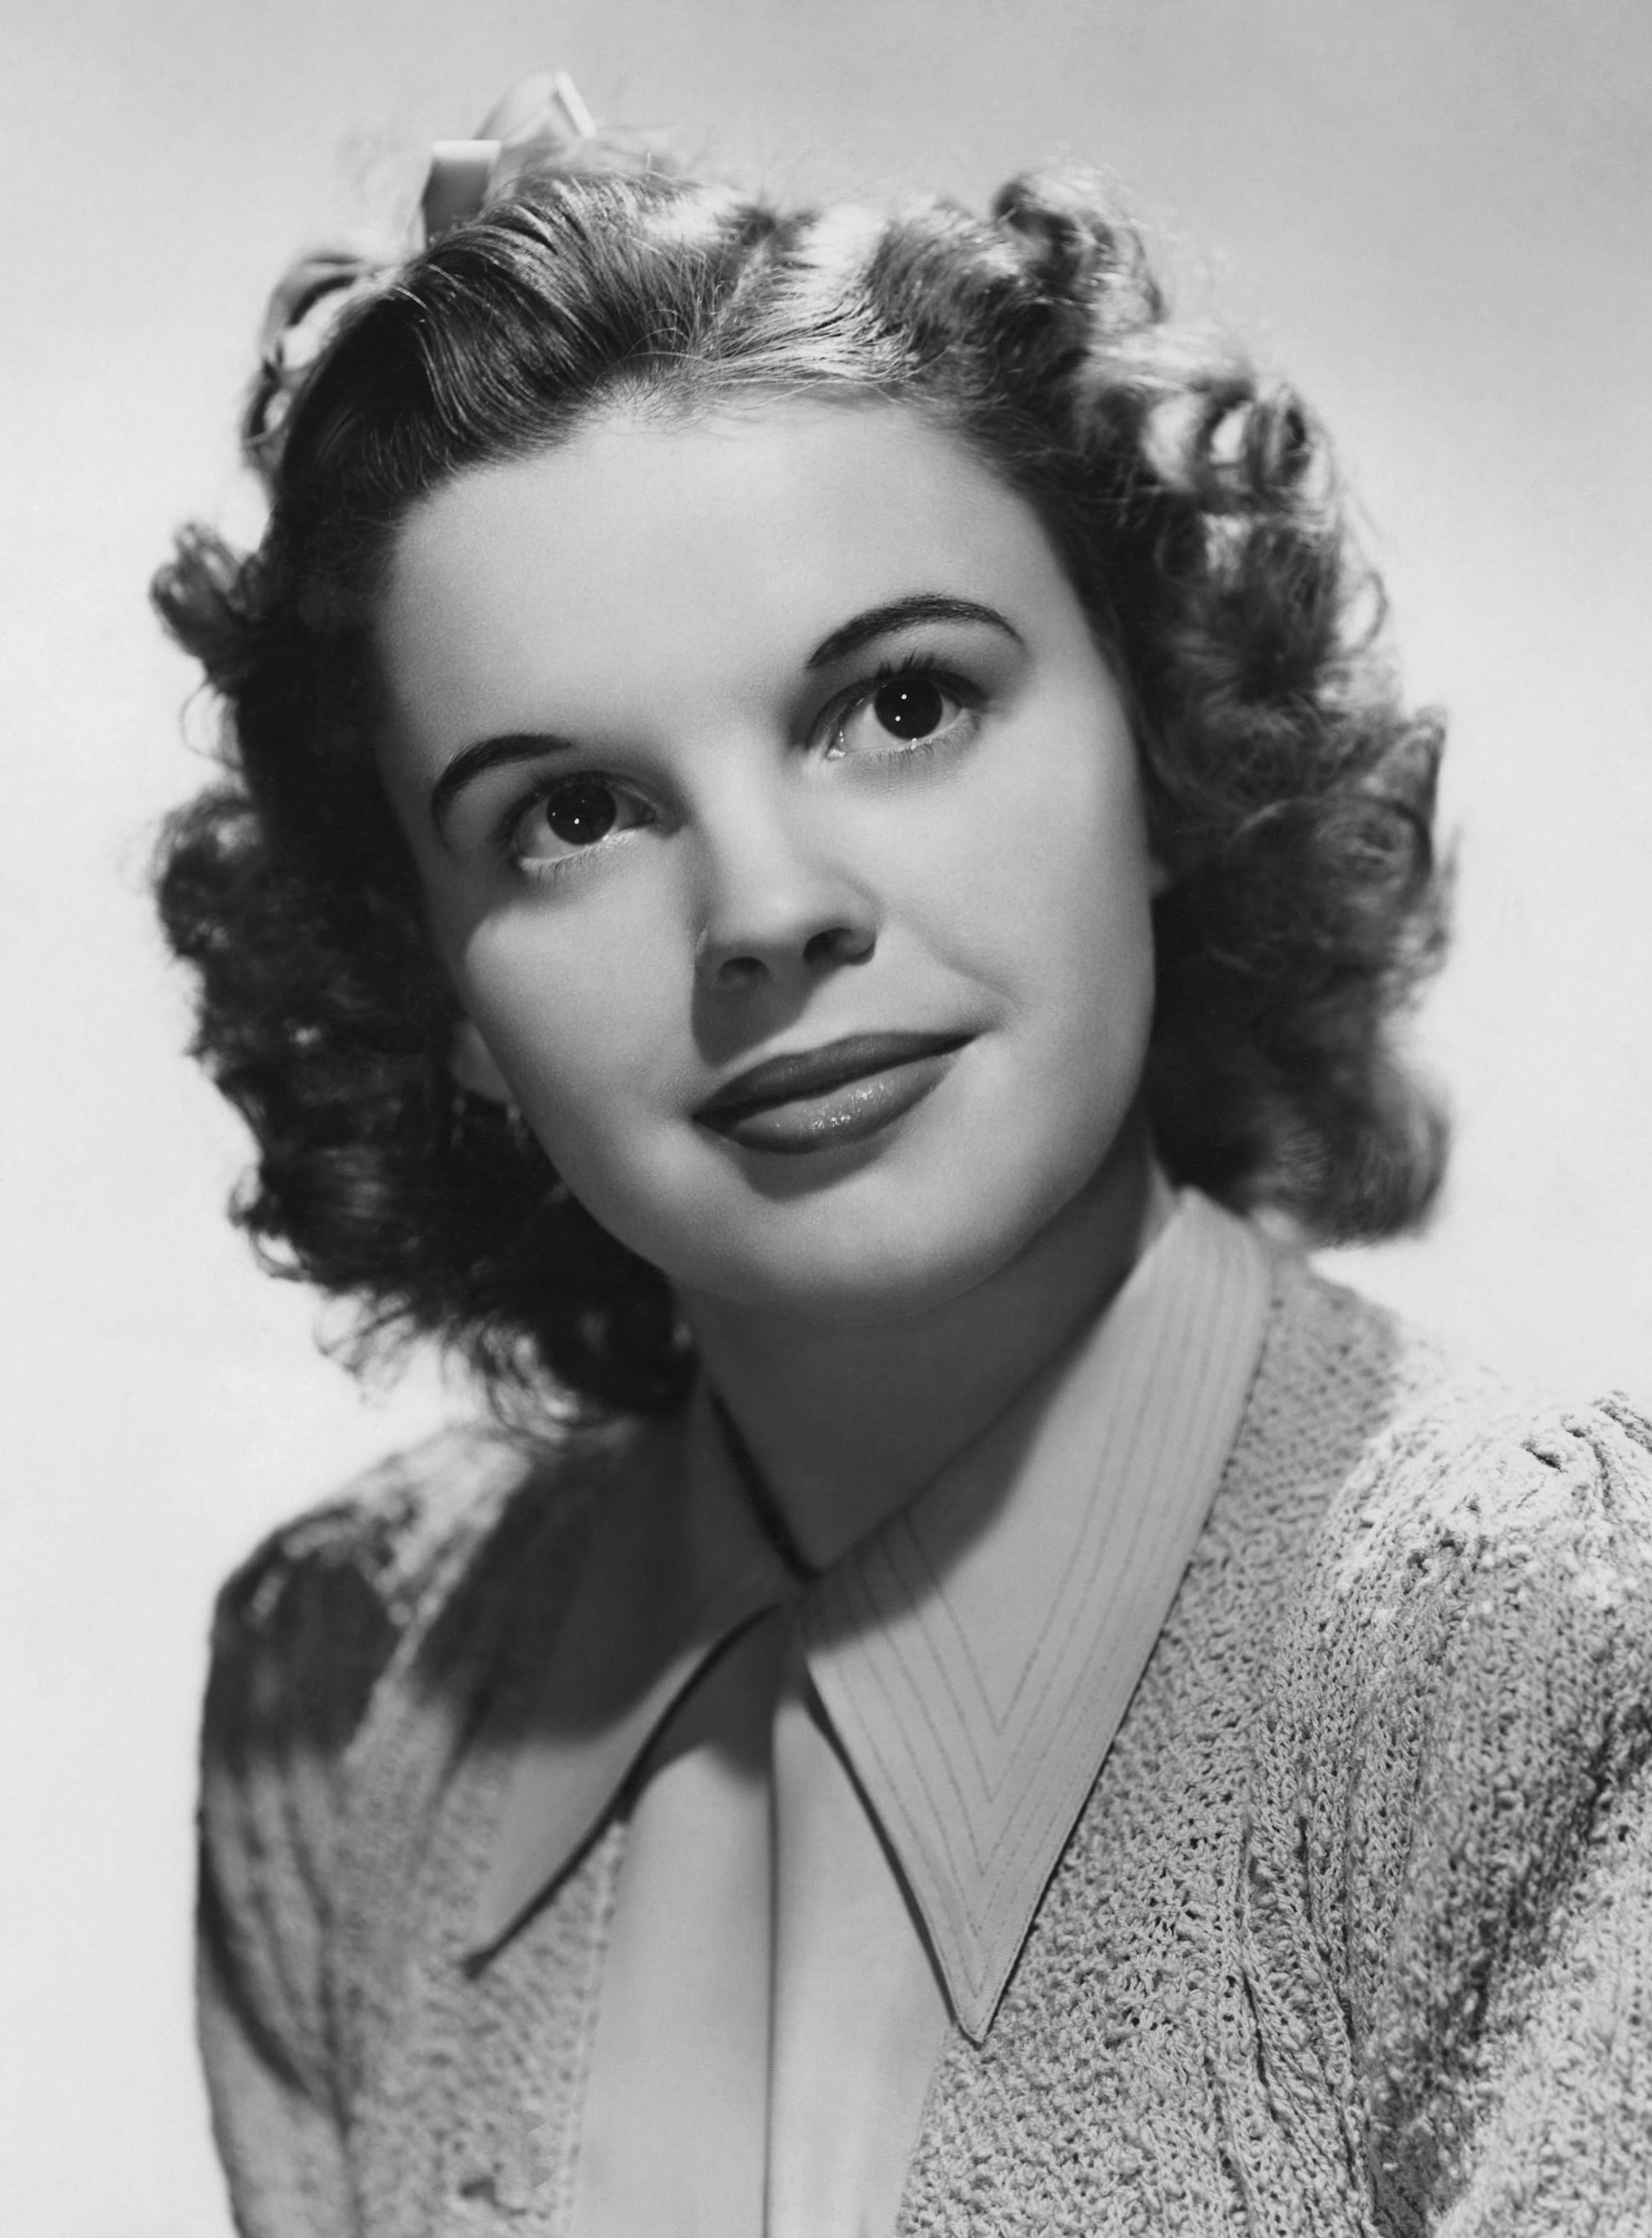 JosepineJackson images Judy Garland HD wallpaper and background 2029x2749